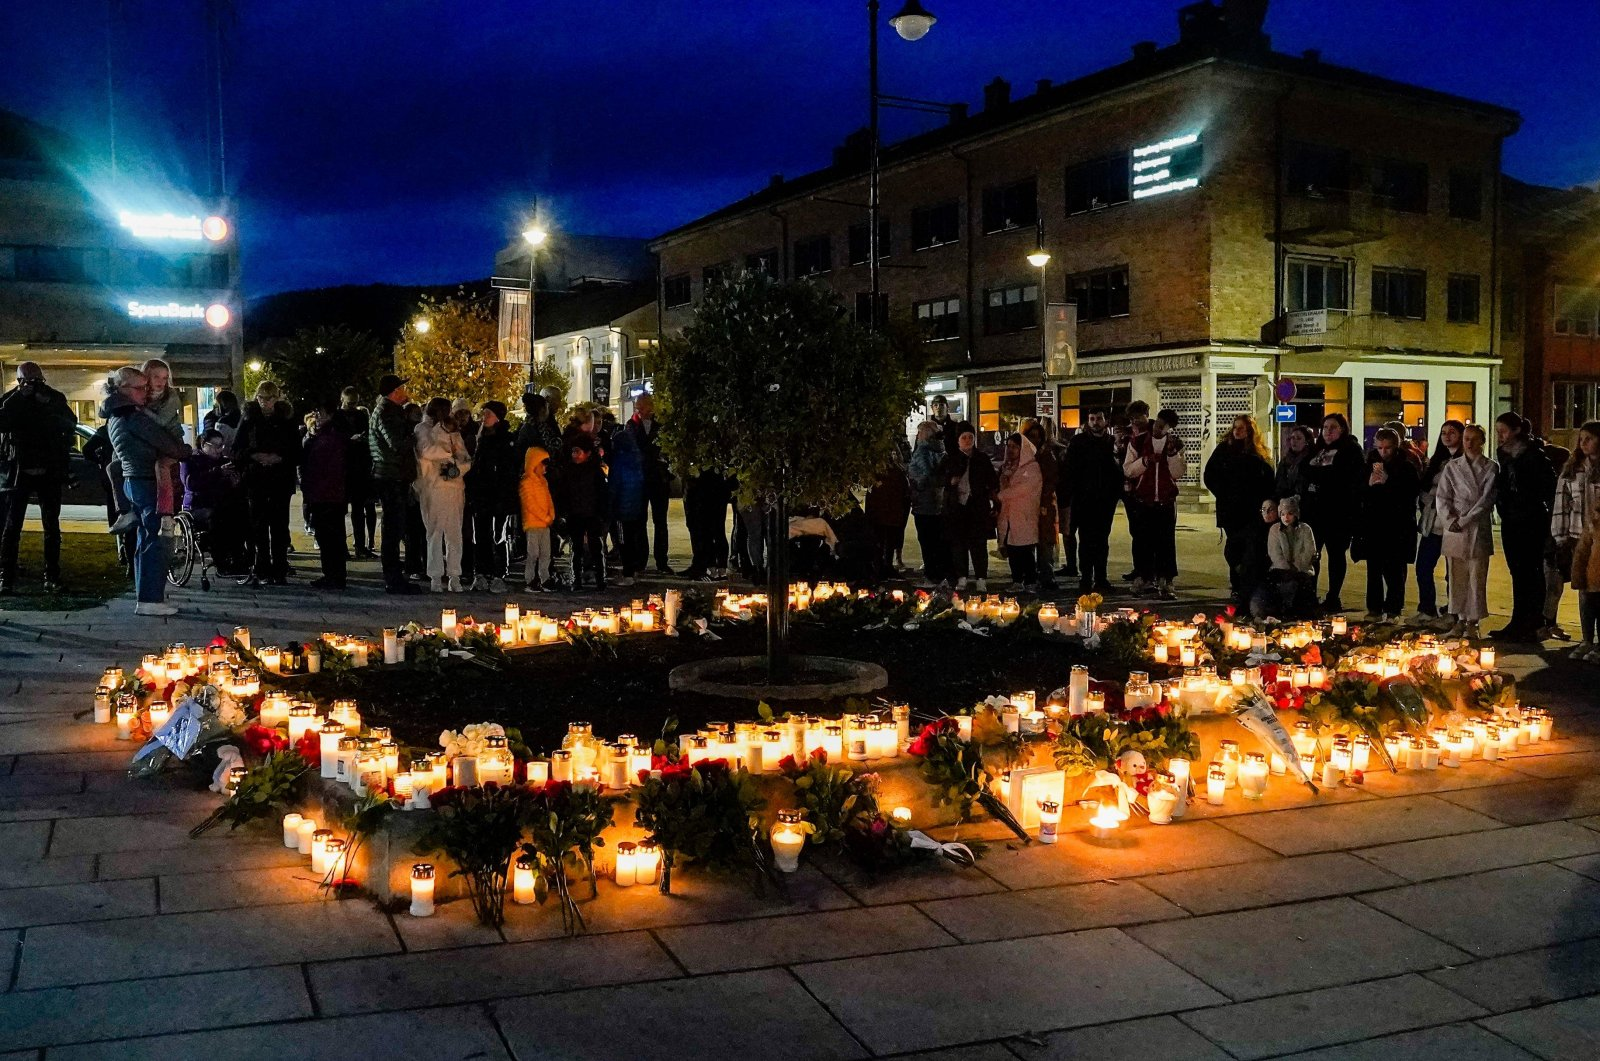 People lay flowers and light candles on the Stortorvet to honor the victims of the terrorist attack in Kongsberg, Norway, Oct. 14, 2021. (AFP Photo)